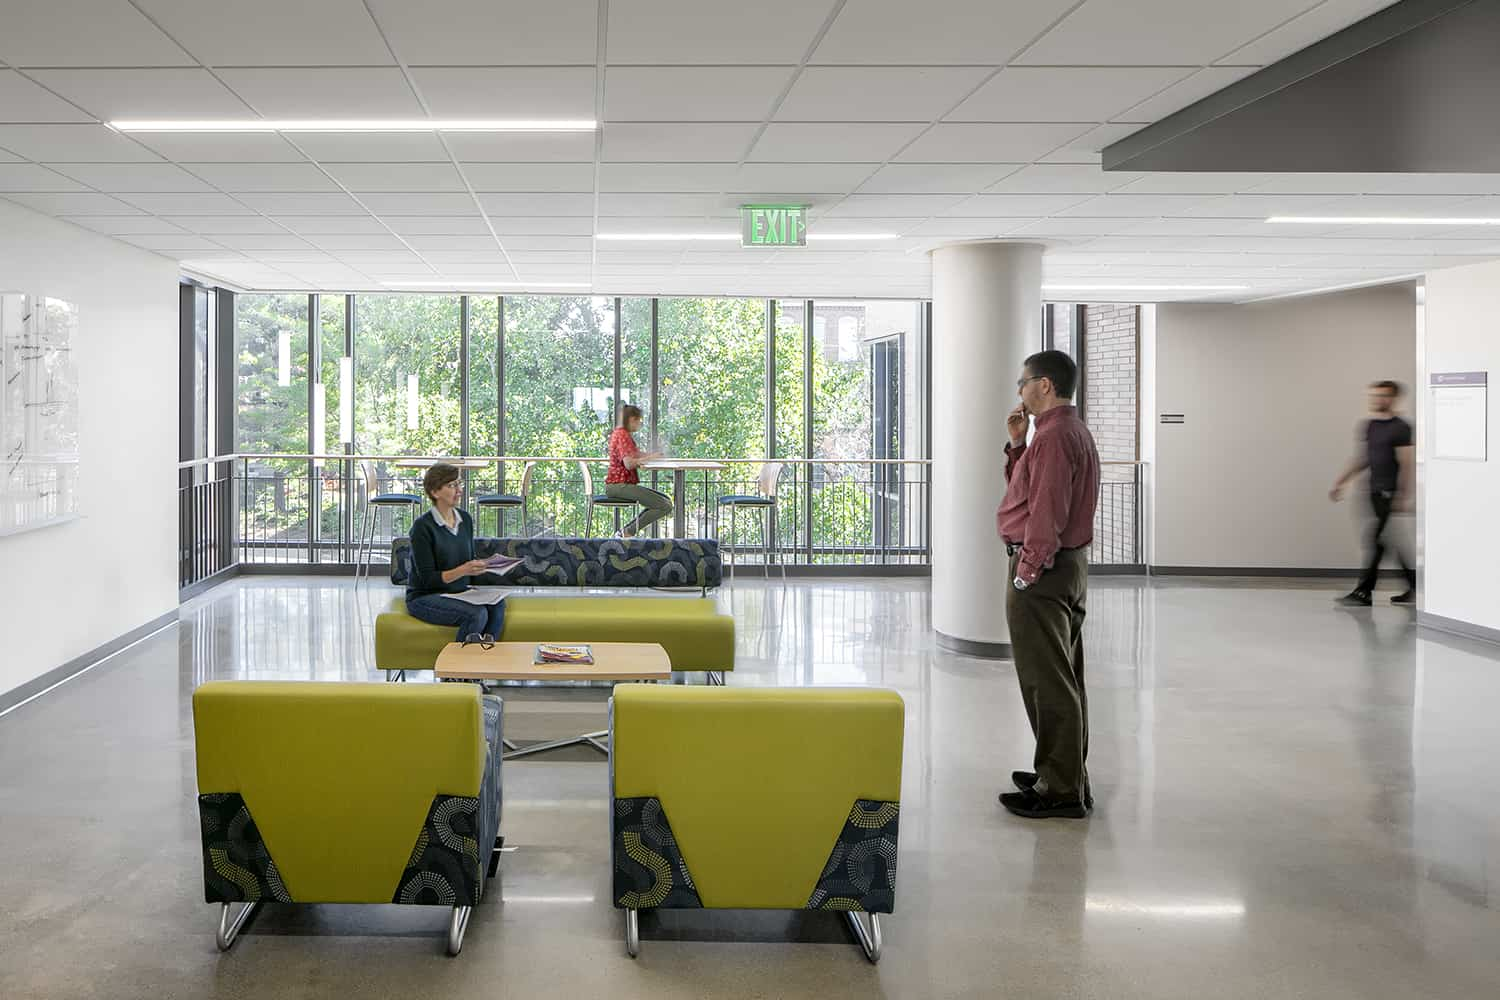 An open third floor lounge with brightly colored furniture and whiteboard workspace.